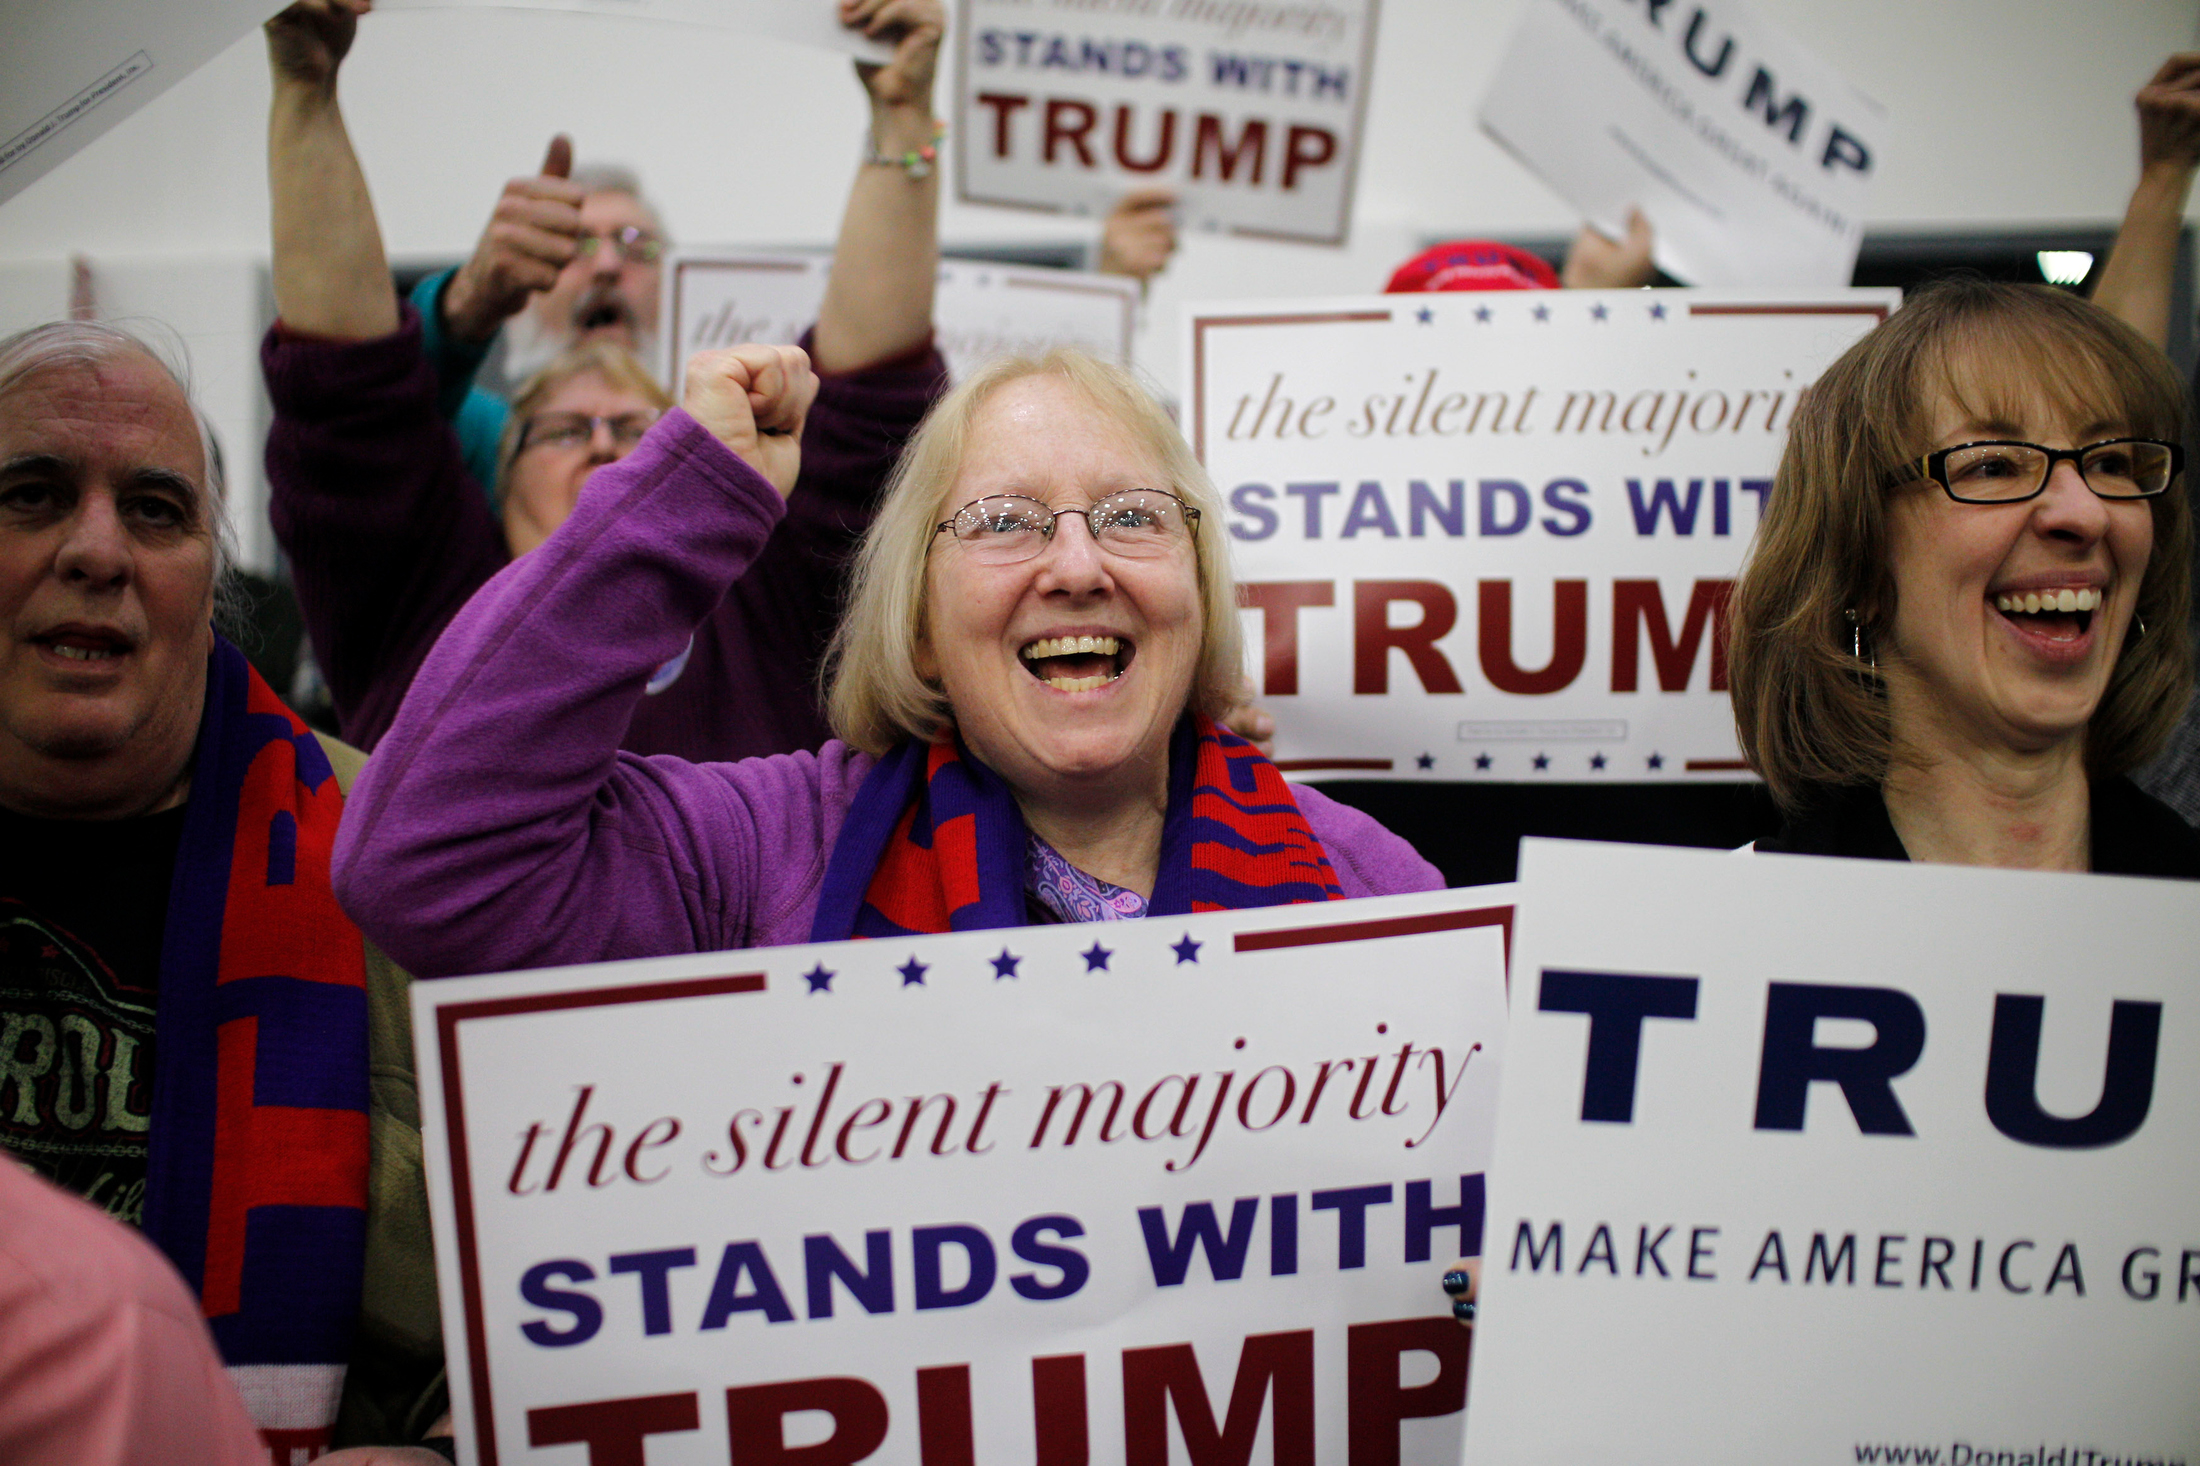 Supporters of Republican candidate for President Donald Trump cheer for the candidate before his arrival at a rally at Plymouth State University in Holderness, New Hampshire on February 7, 2016. New Hampshire will hold the first primary in the nation on February 9th.